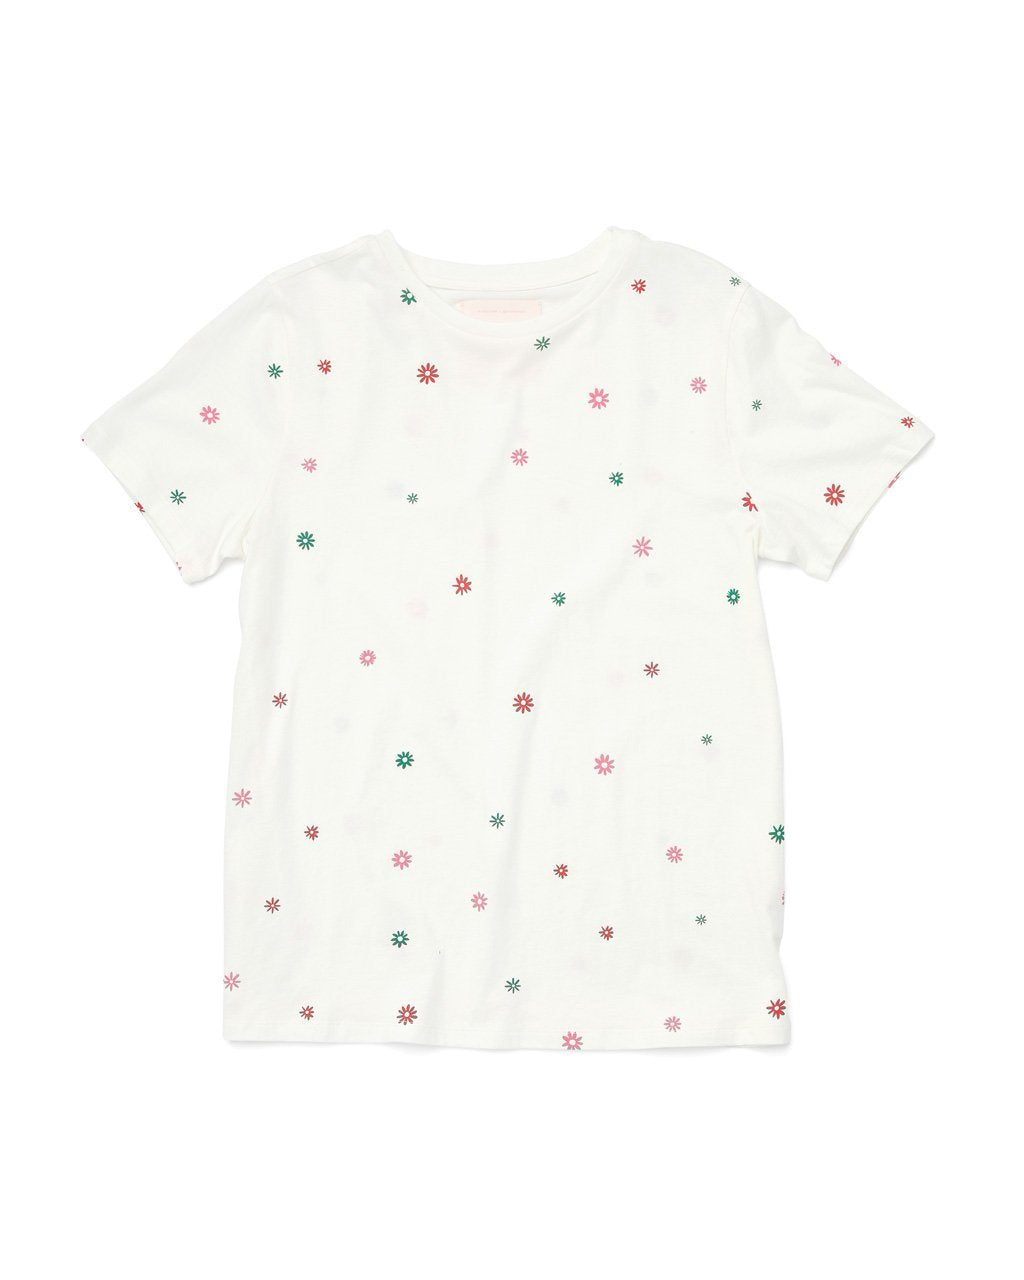 white cotton tee with a multi colored daisy pattern all over